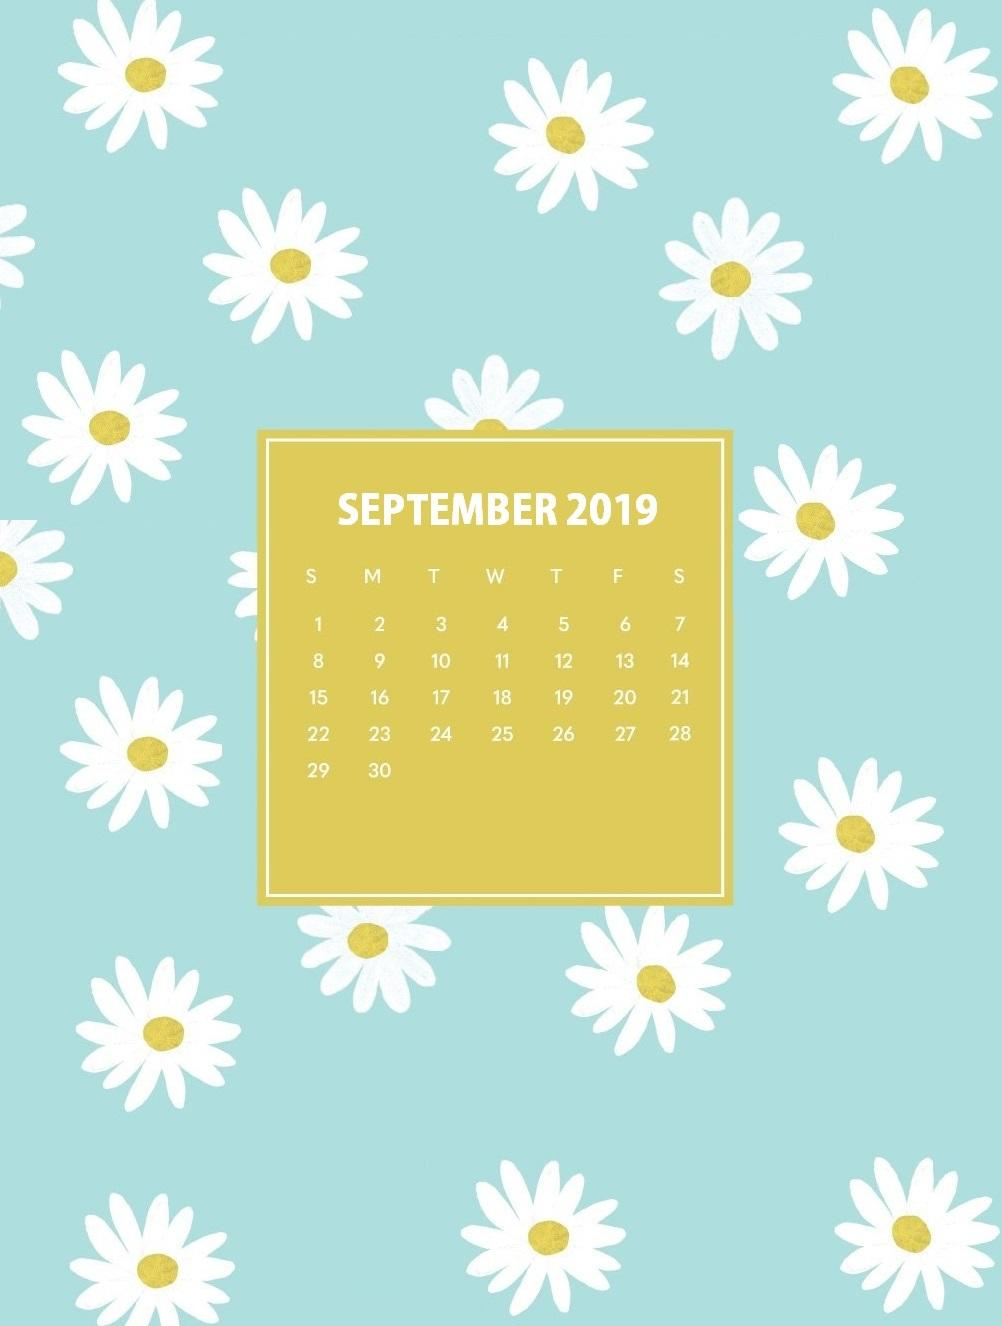 iPhone September 2019 Calendar Wallpapers